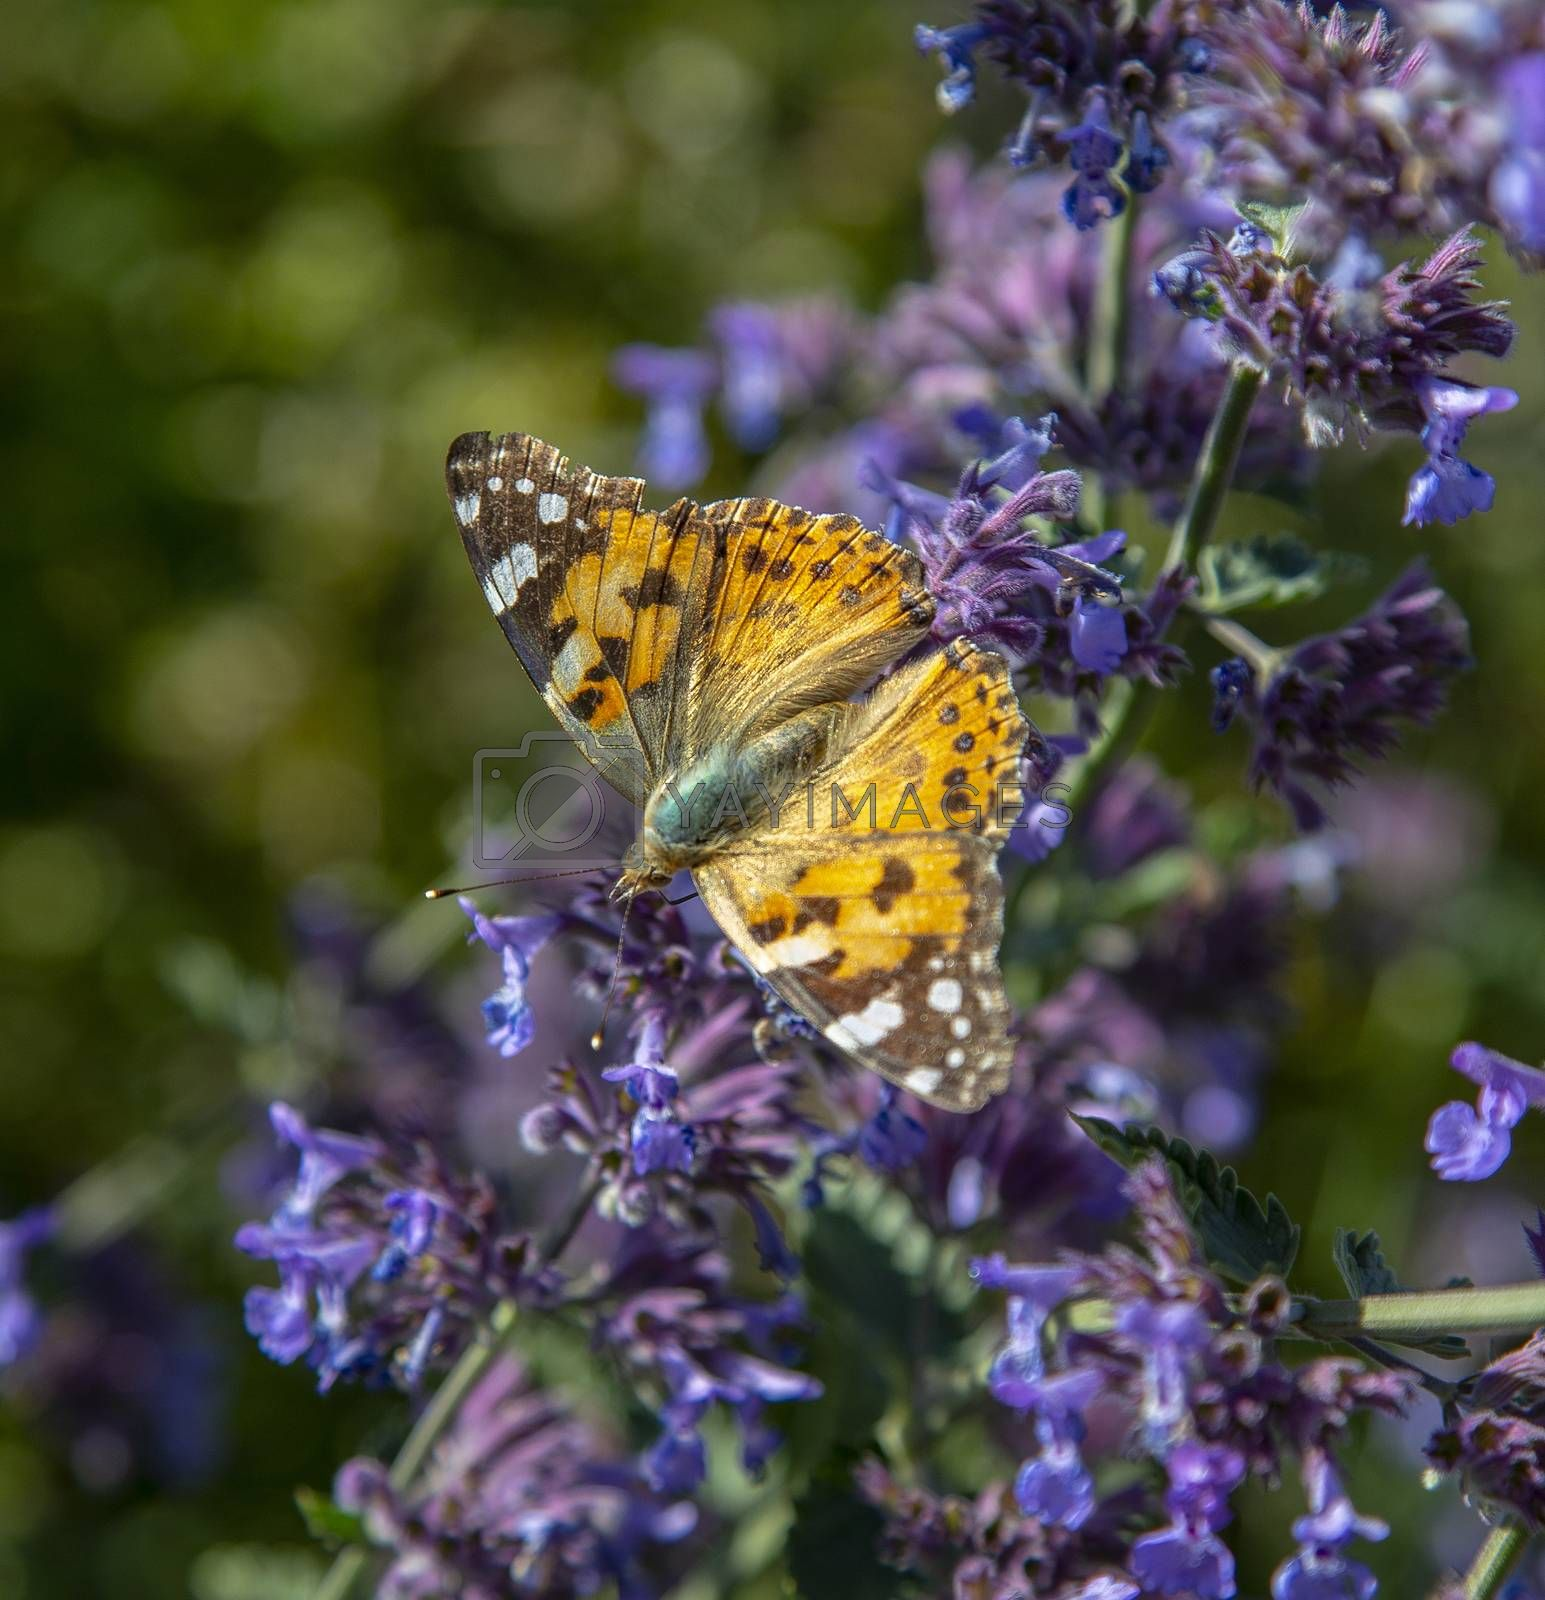 Sylt, flowers with painted lady by Gerwin-Schadl-Photographer